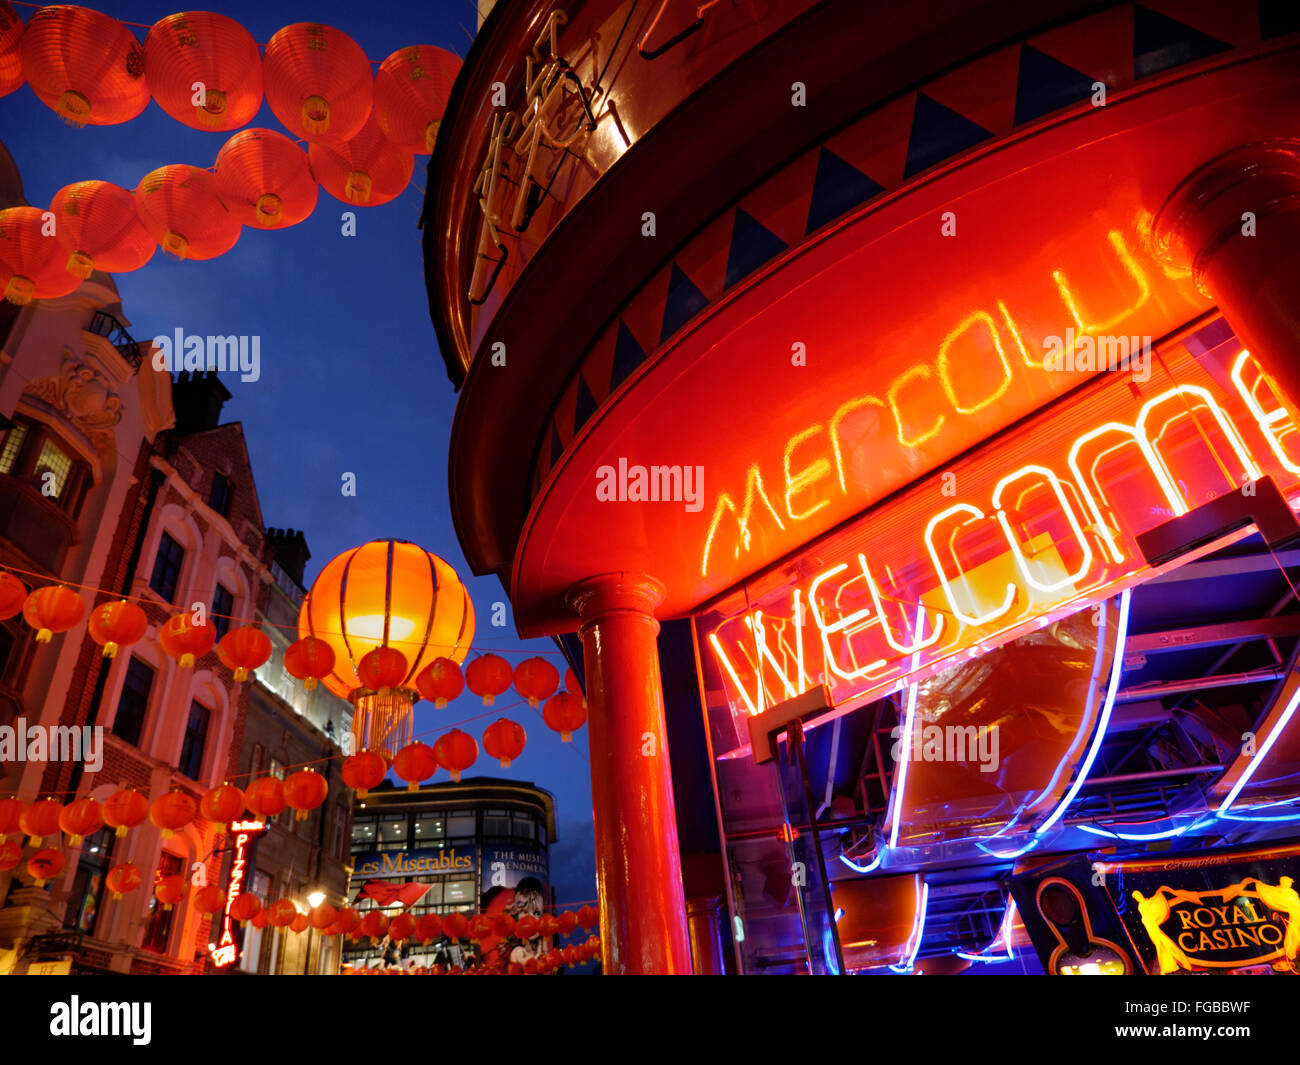 Chinese lanterns lit up on a busy night in Wardour Street with neon 'Welcome' sign Chinatown Soho London - Stock Image